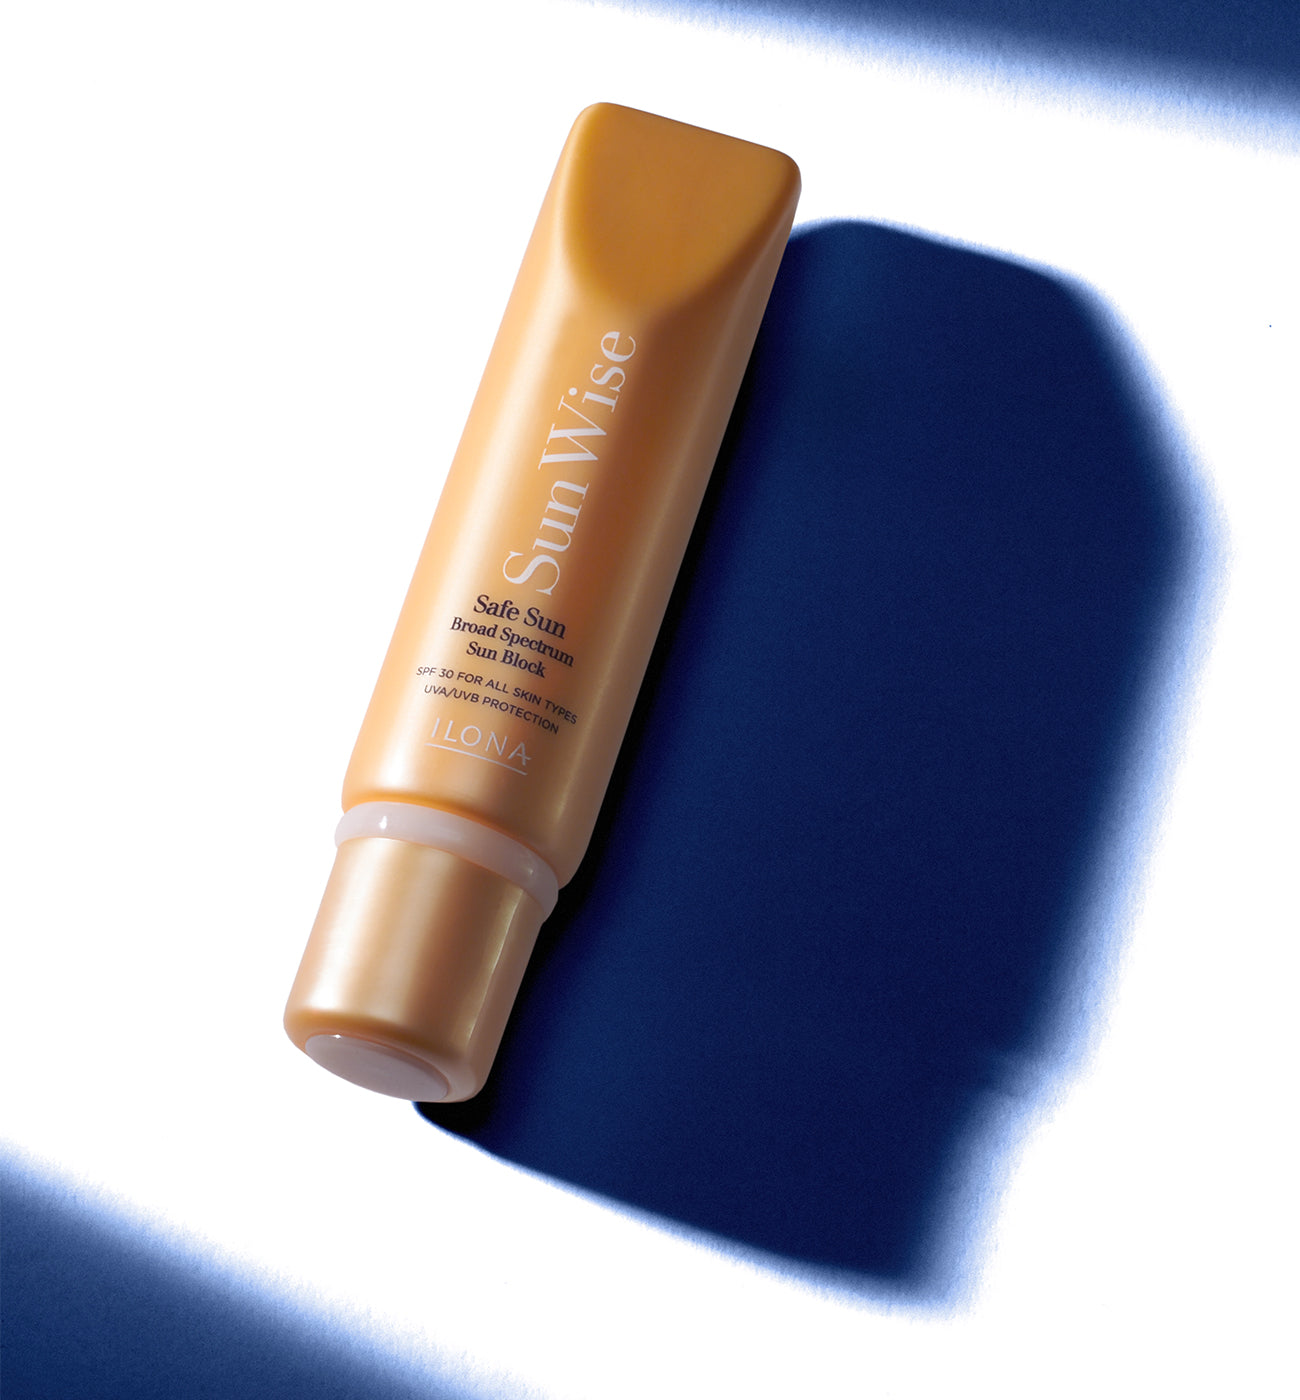 Safe Sun _ Broad Spectrum Sun Block SPF 30